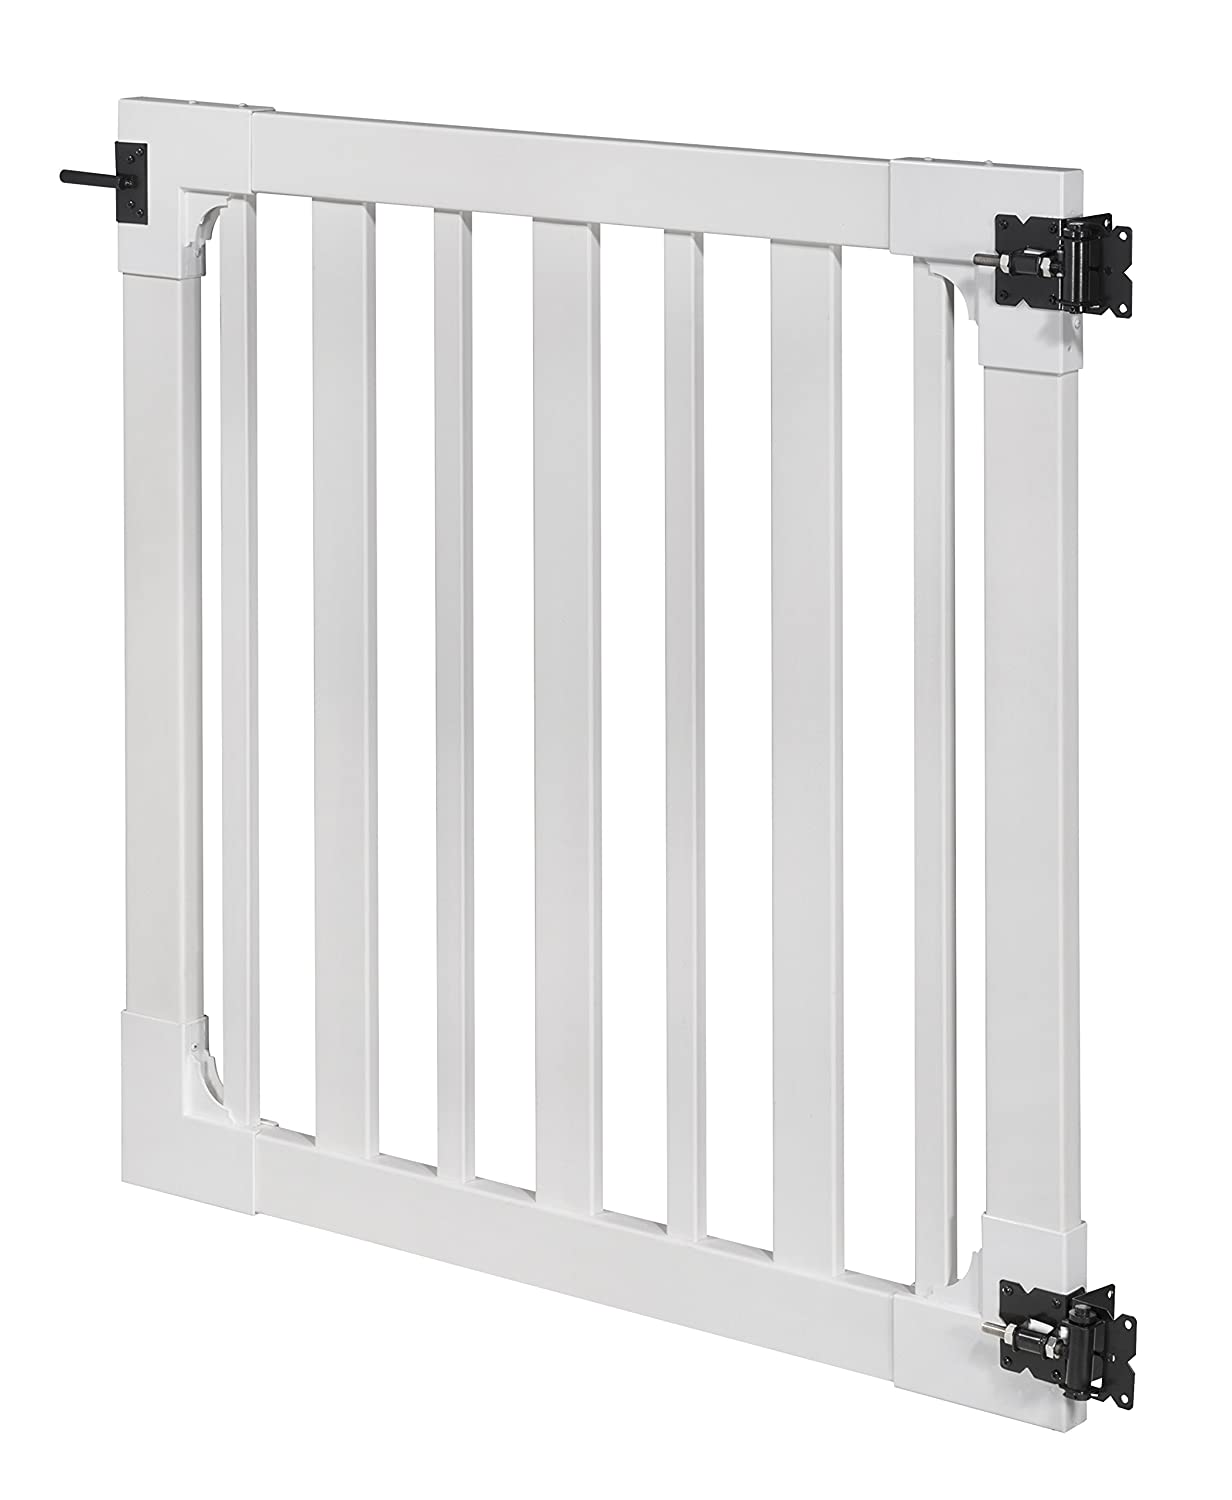 Pack 3- 48 High by 48 Wide WamBam Sturbridge Vinyl Yard and Pool Gate with Hardware